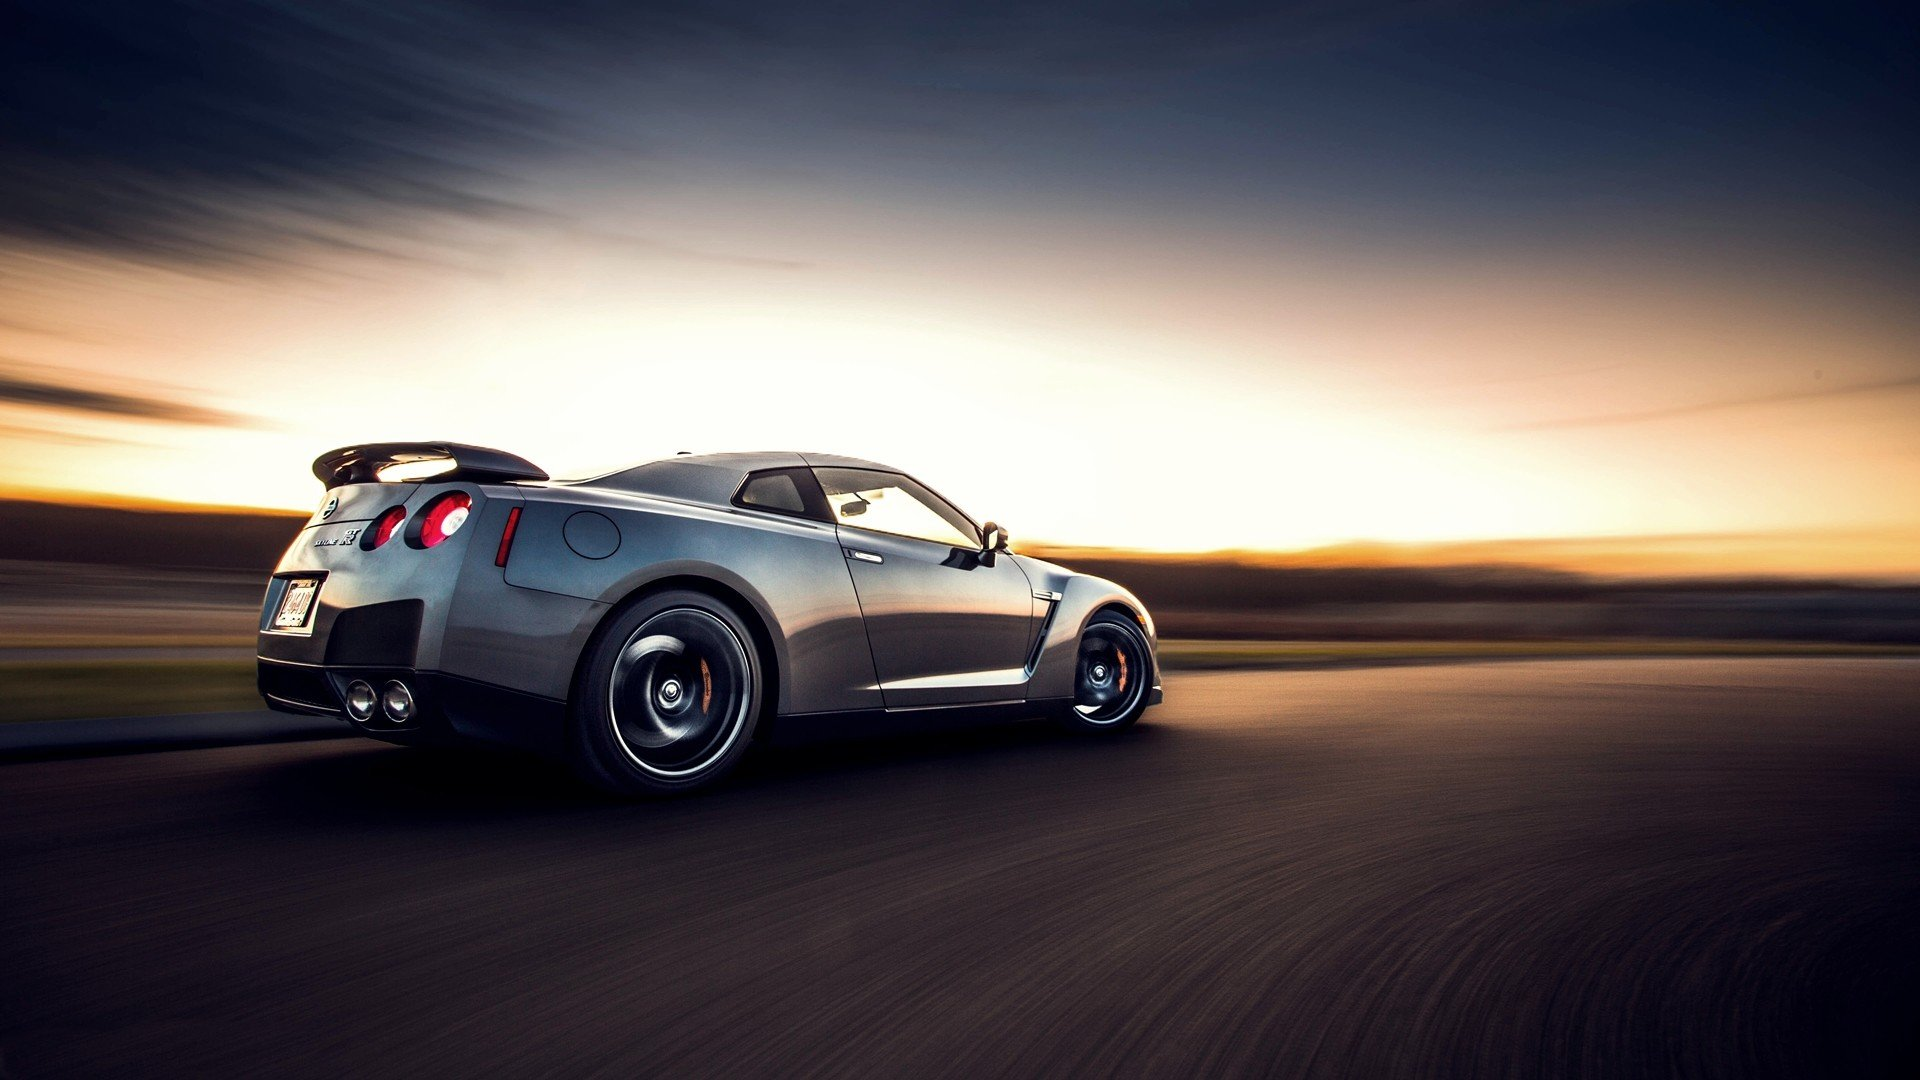 Wallpaper Nissan Gtr Iphone